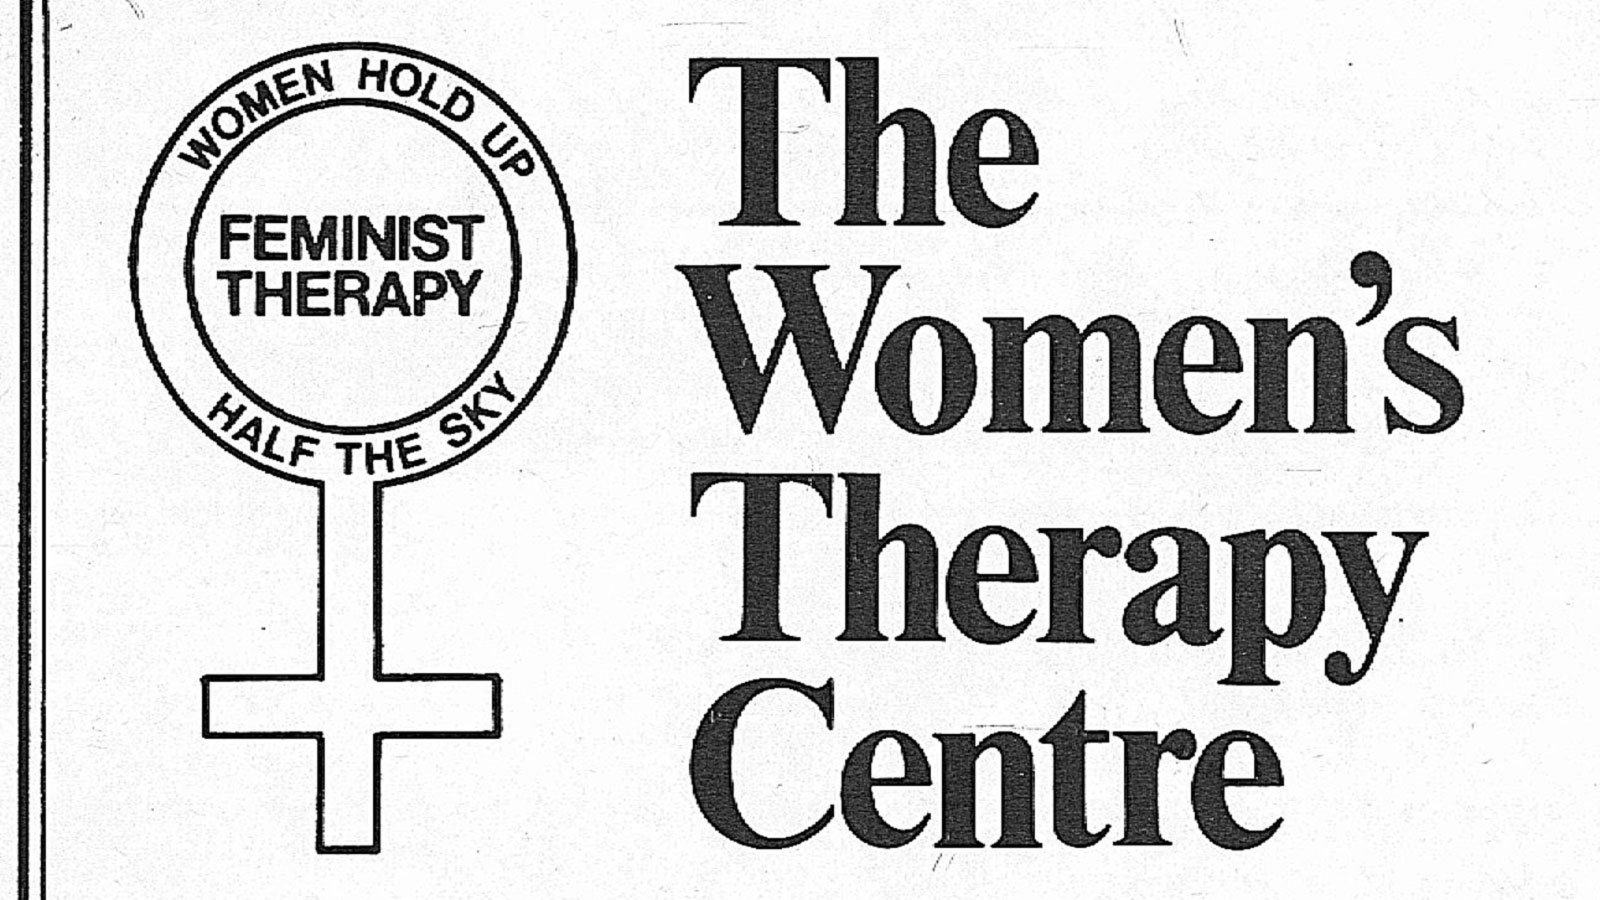 The politics of therapy and the Women's Liberation Movement